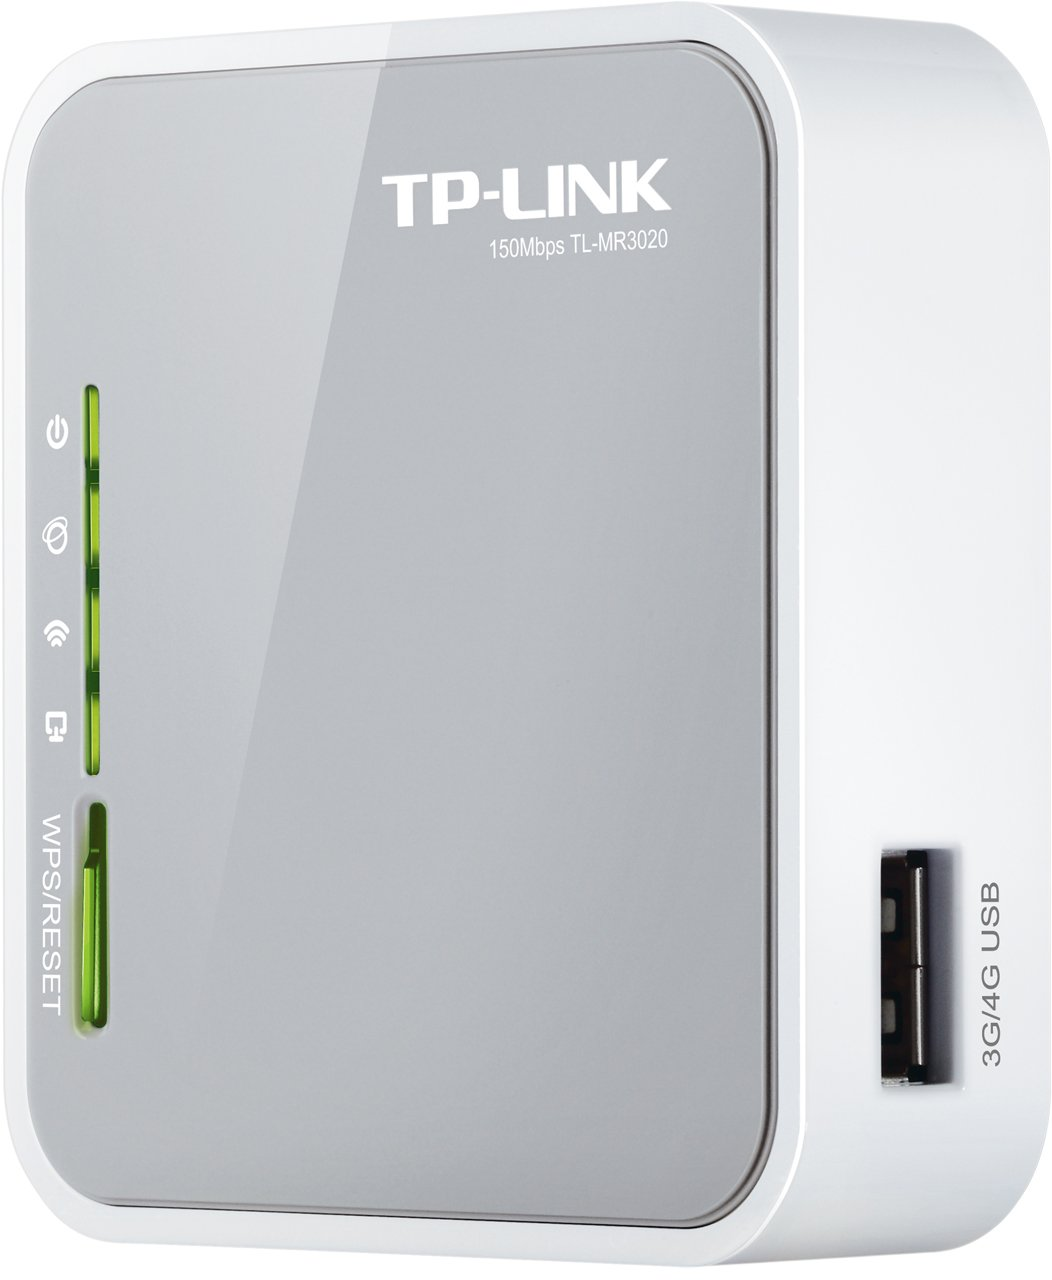 Mobile Modem for gifts for abroad travelling